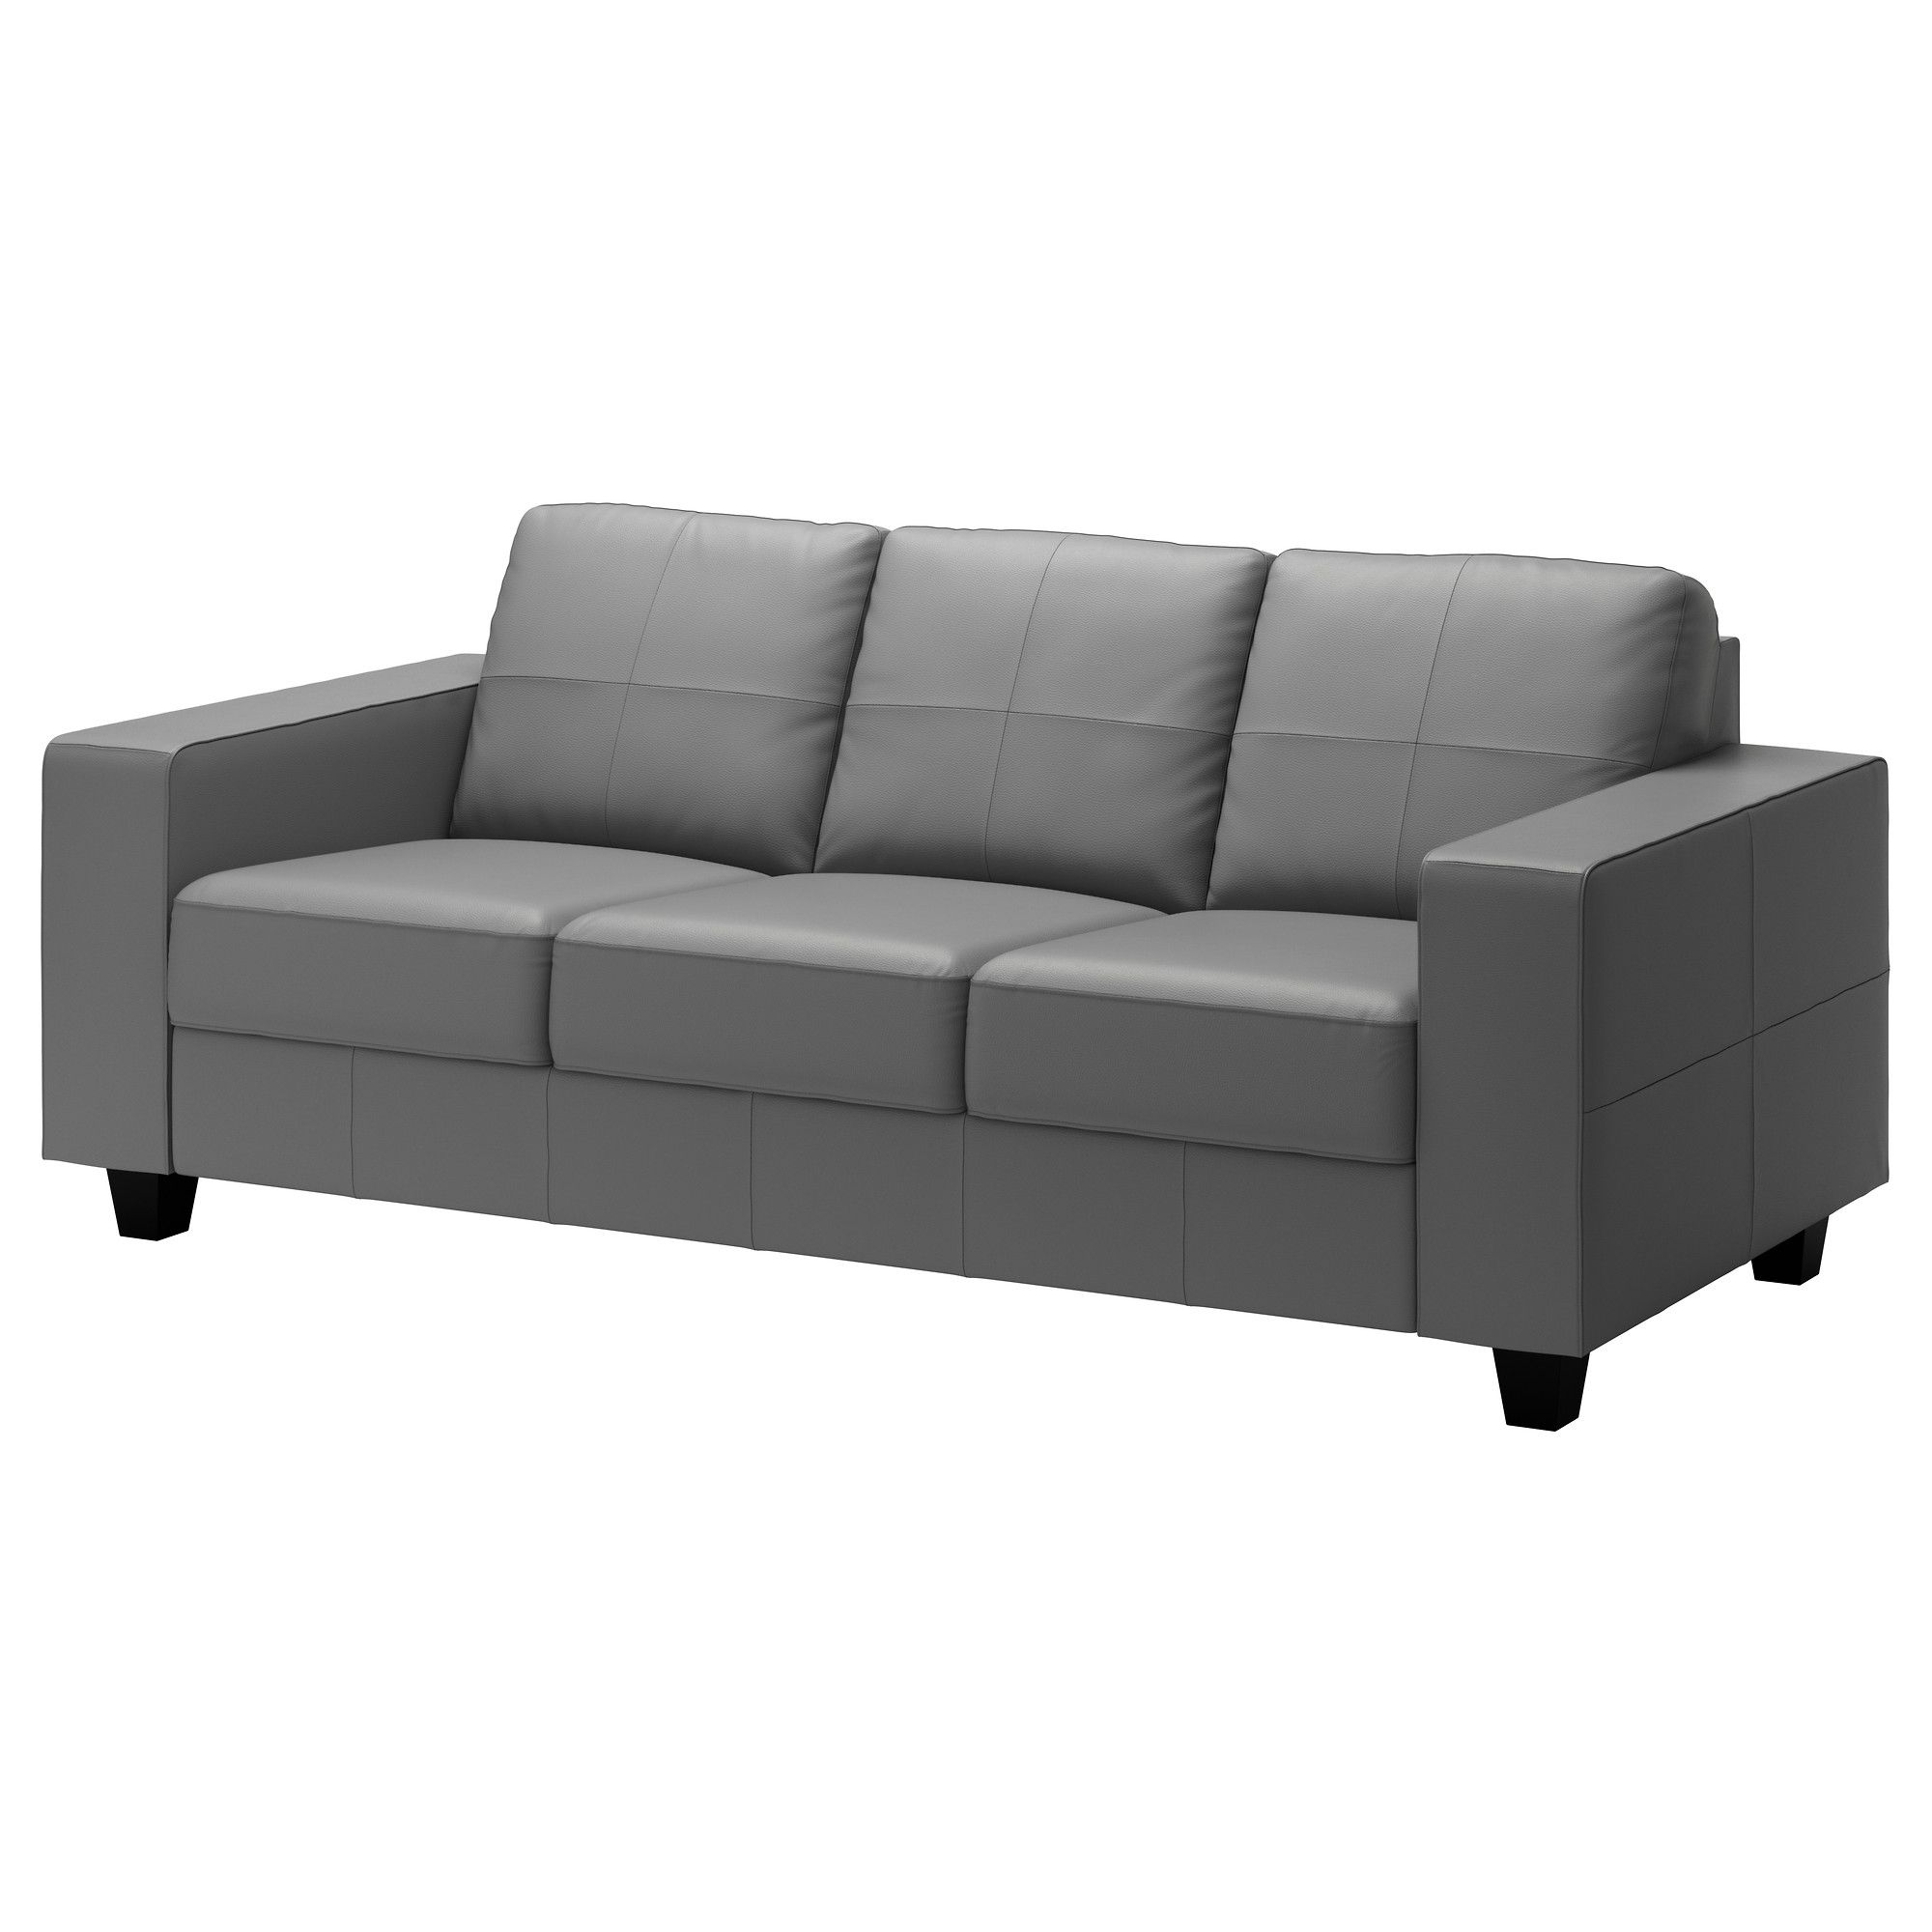 Ikea Couch Bett Trend Ikea Grey Leather Ya Skogaby Sofa Robust Medium Gray Ikea